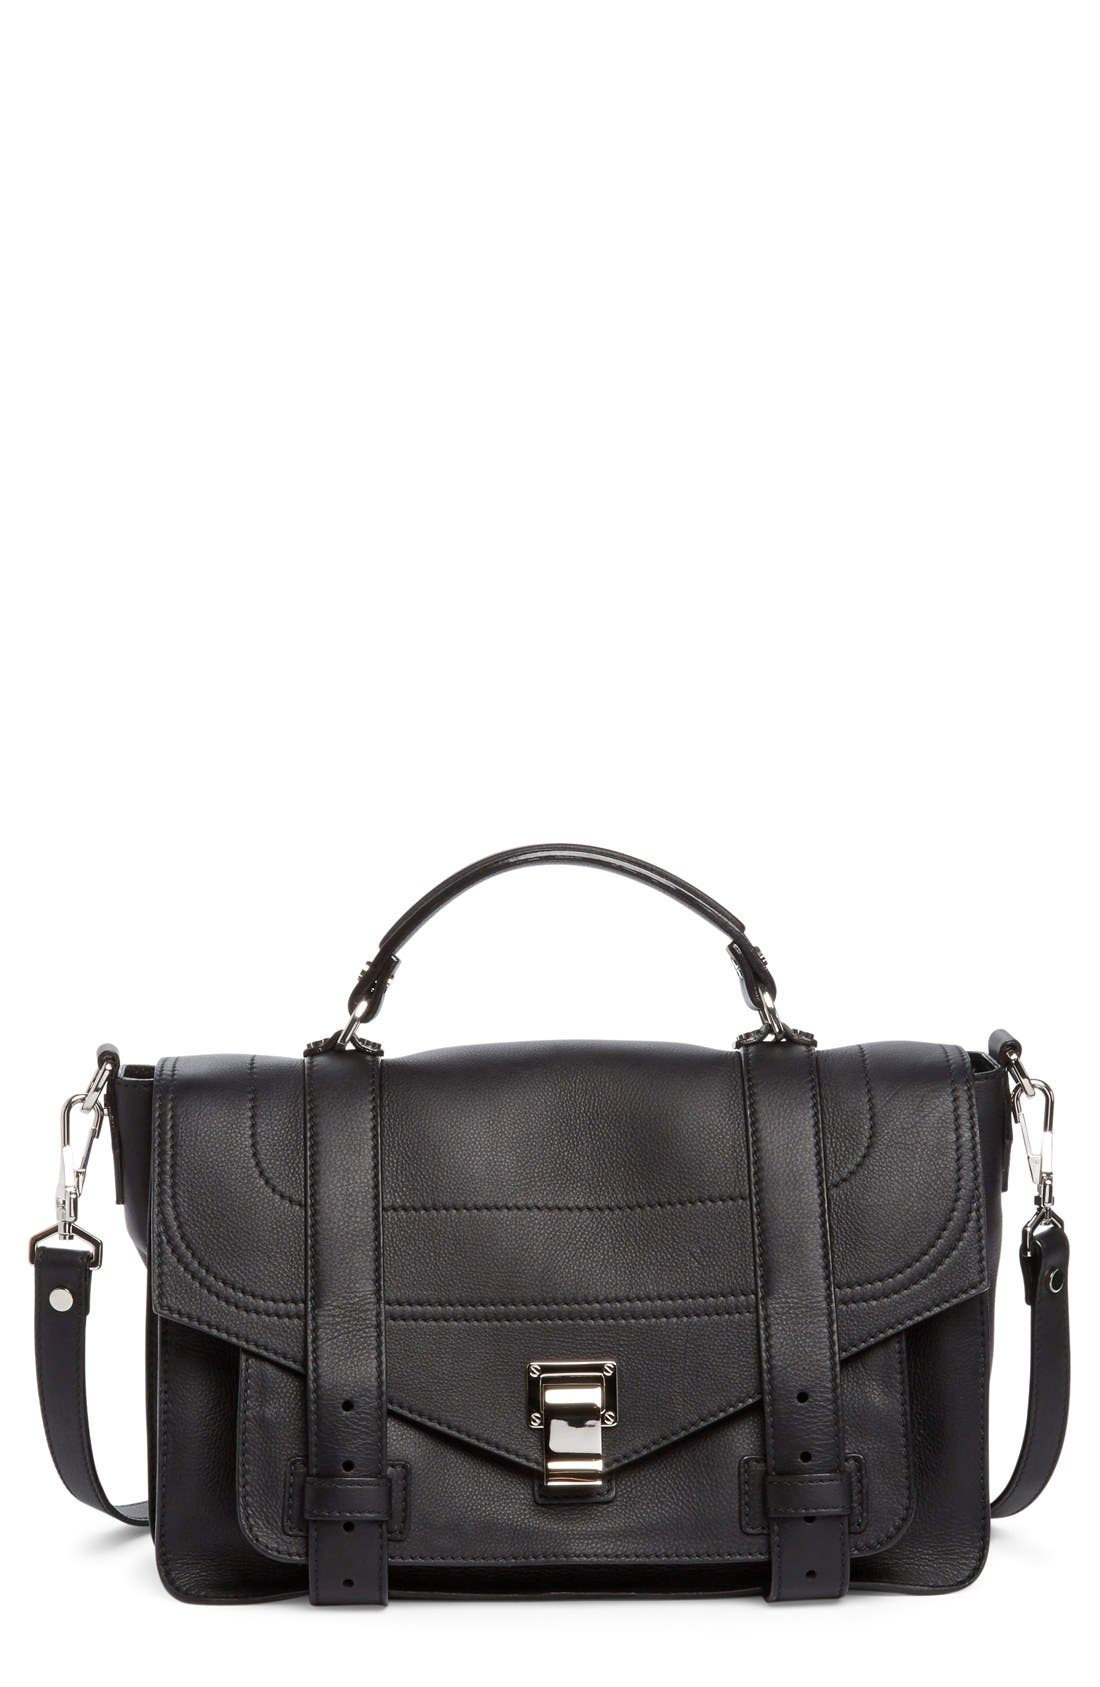 Medium PS1+ Grainy Leather Satchel,                             Main thumbnail 1, color,                             Black